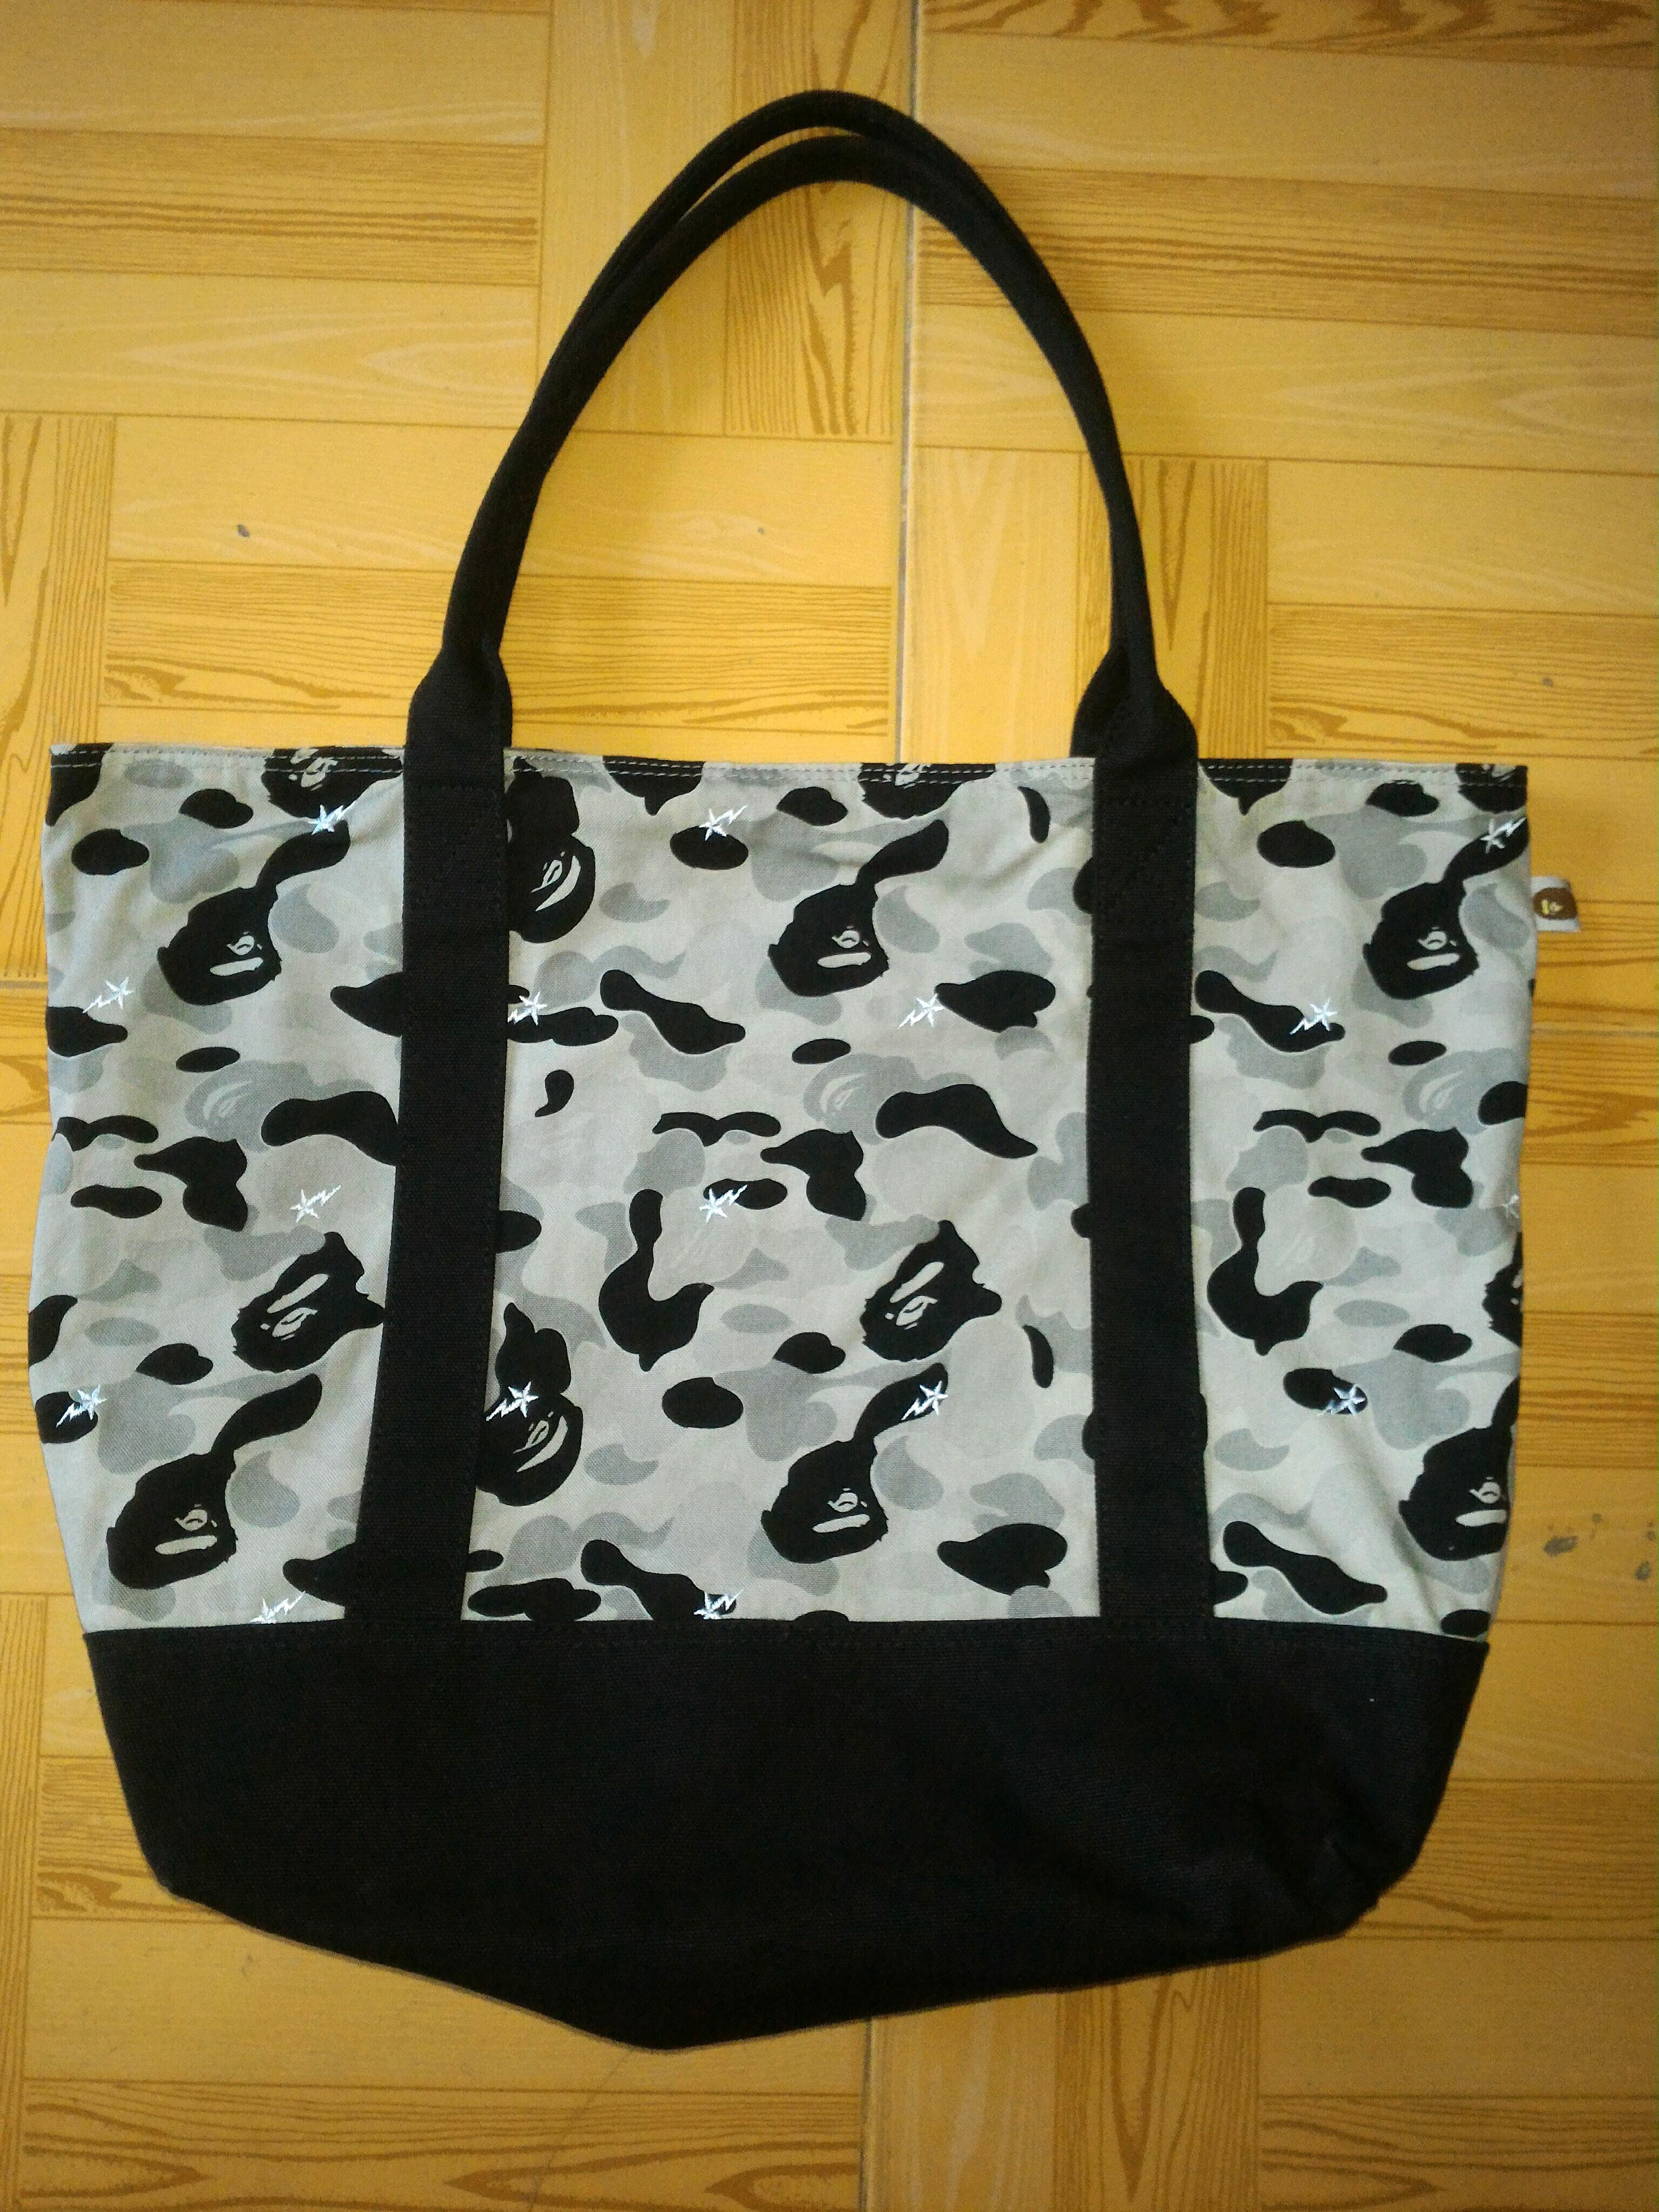 Bismillah For Sale A BATHING APE Bag Motif Camo Original 1Slott + Multi Slott Keren Di Bawa Shopping2 Bossku👌Slide 👉 For Detail